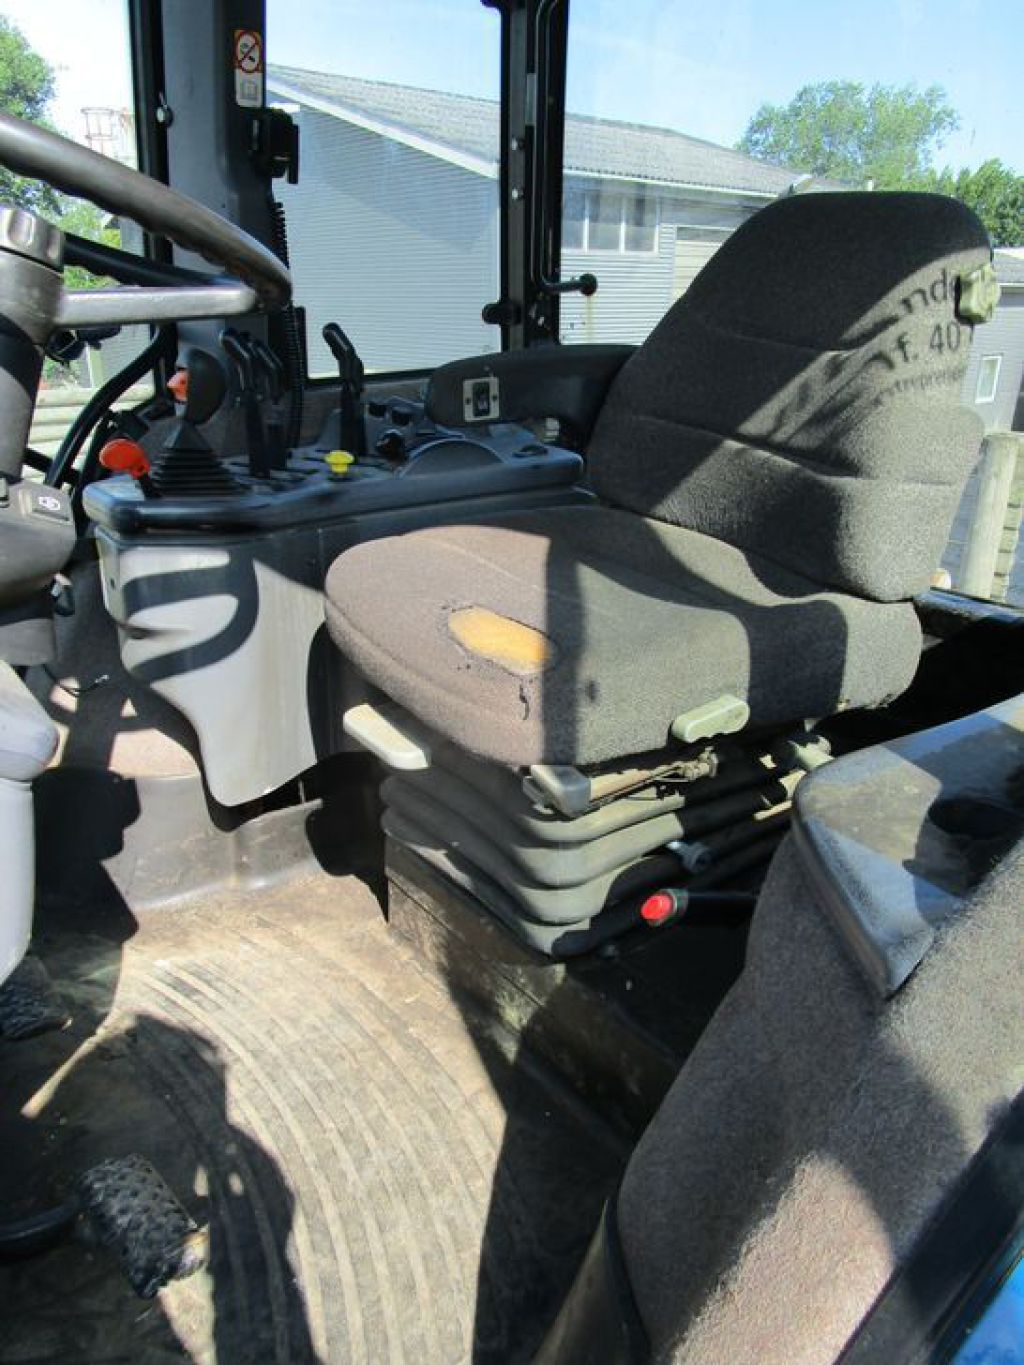 New Holland 8870 4wd Tractor for sale  Retrade offers used